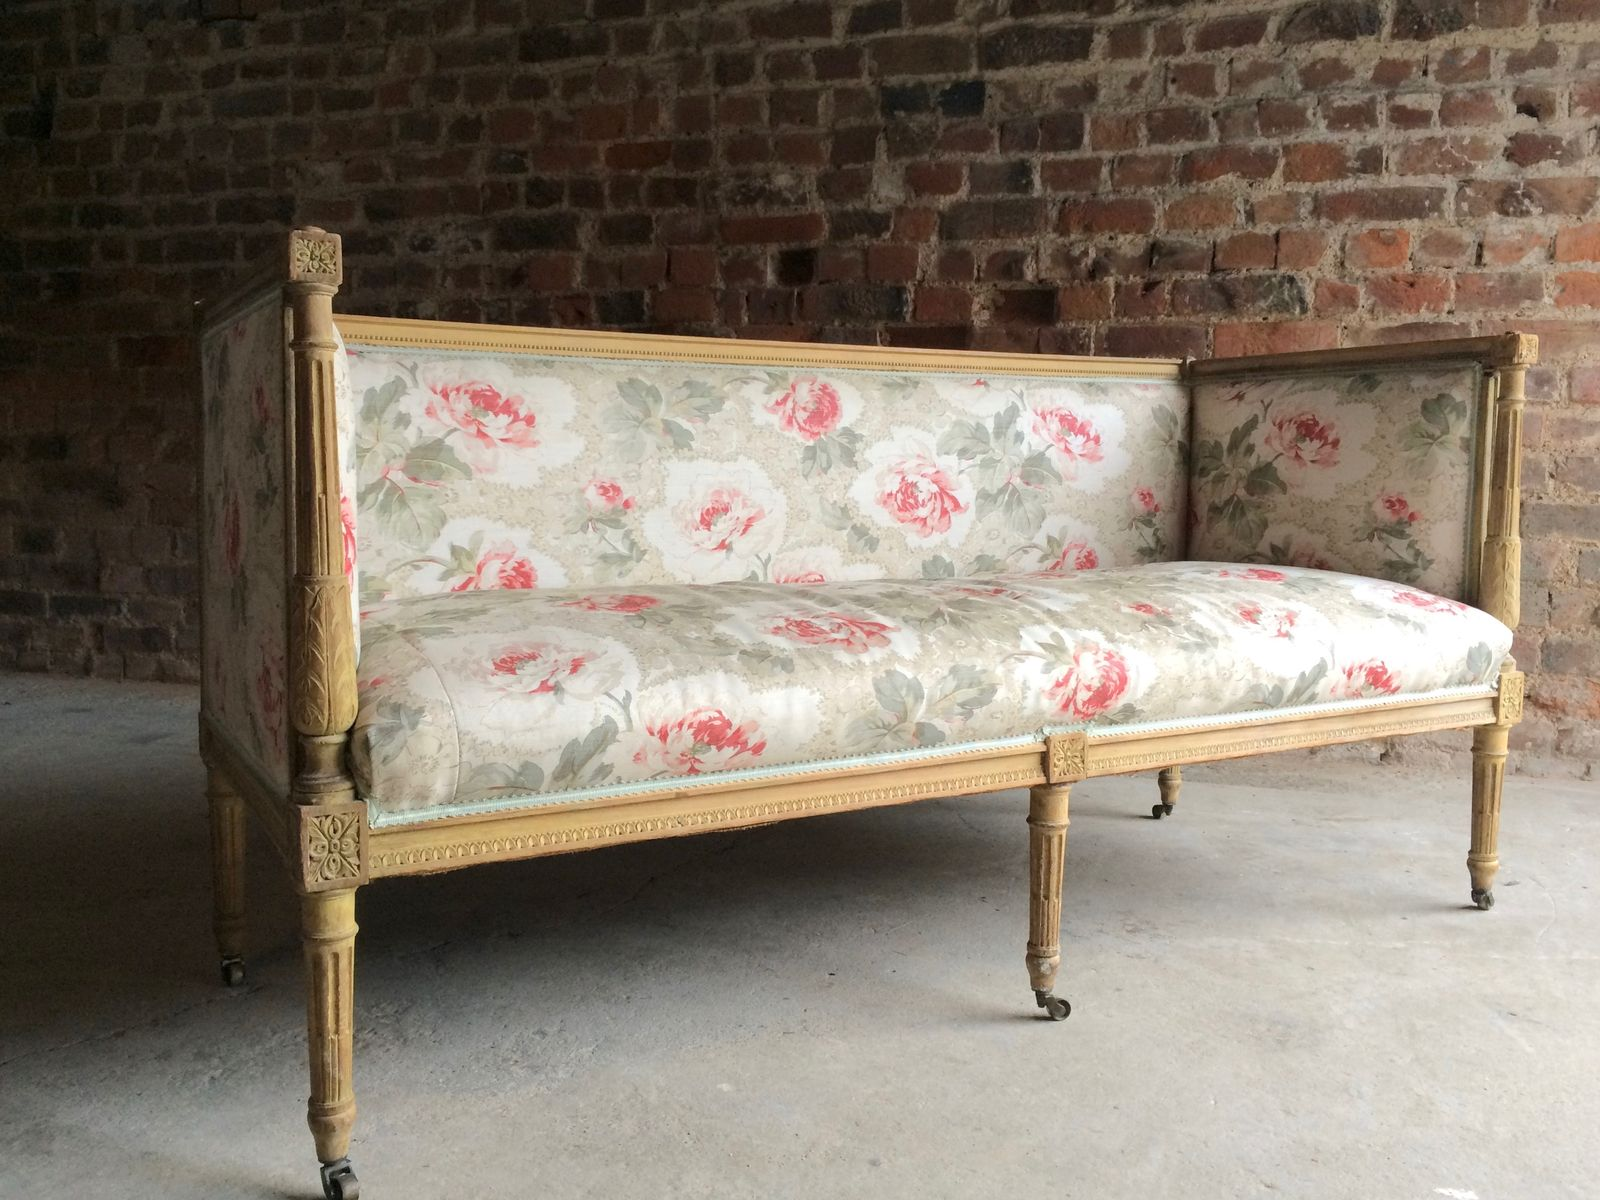 Antique French Salon Sofa in Beech 1770s for sale at Pamono